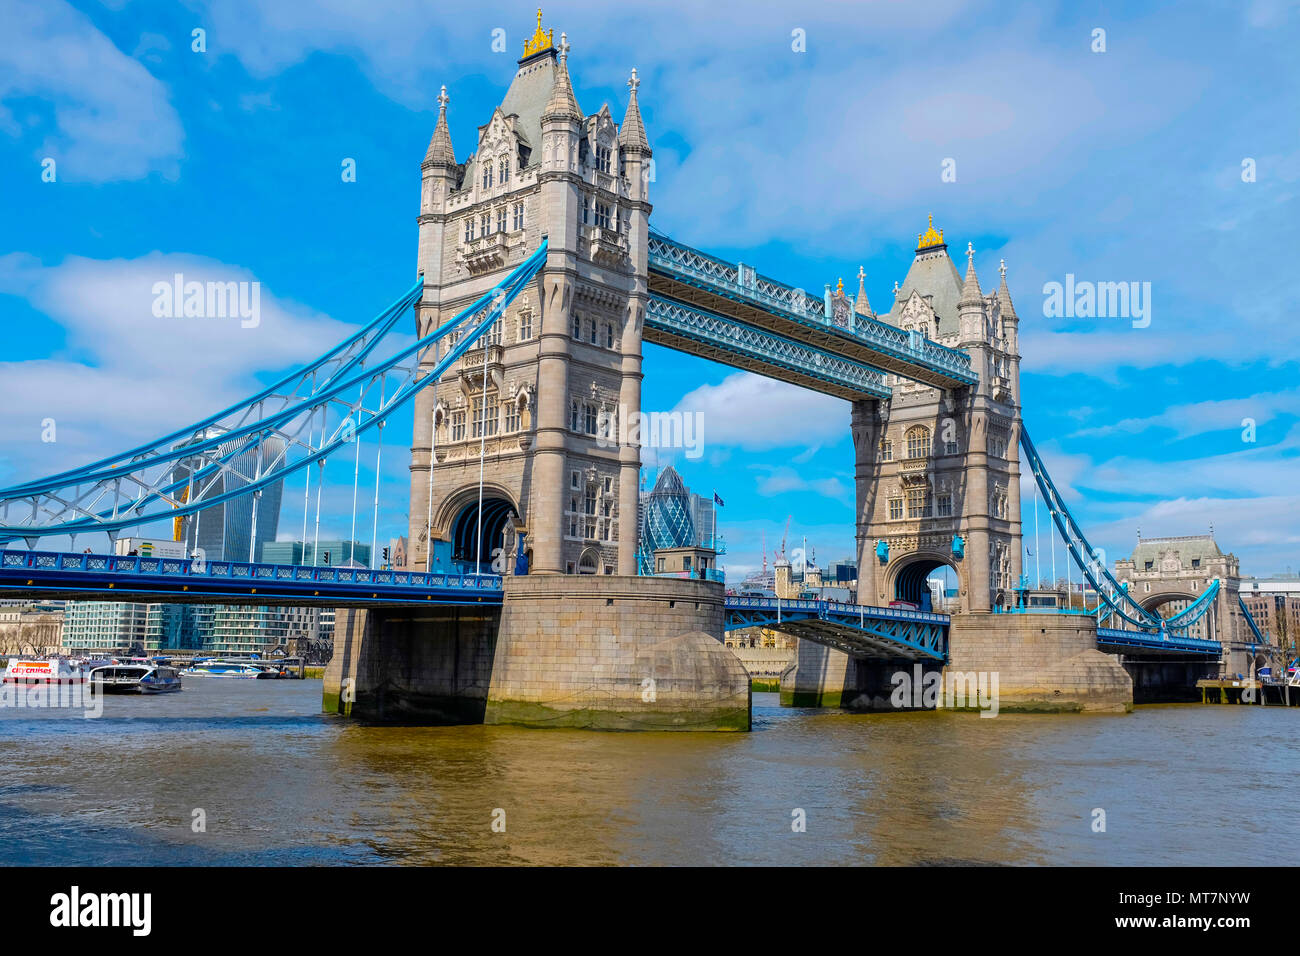 Tower Bridge, London, United Kingdom - Stock Image